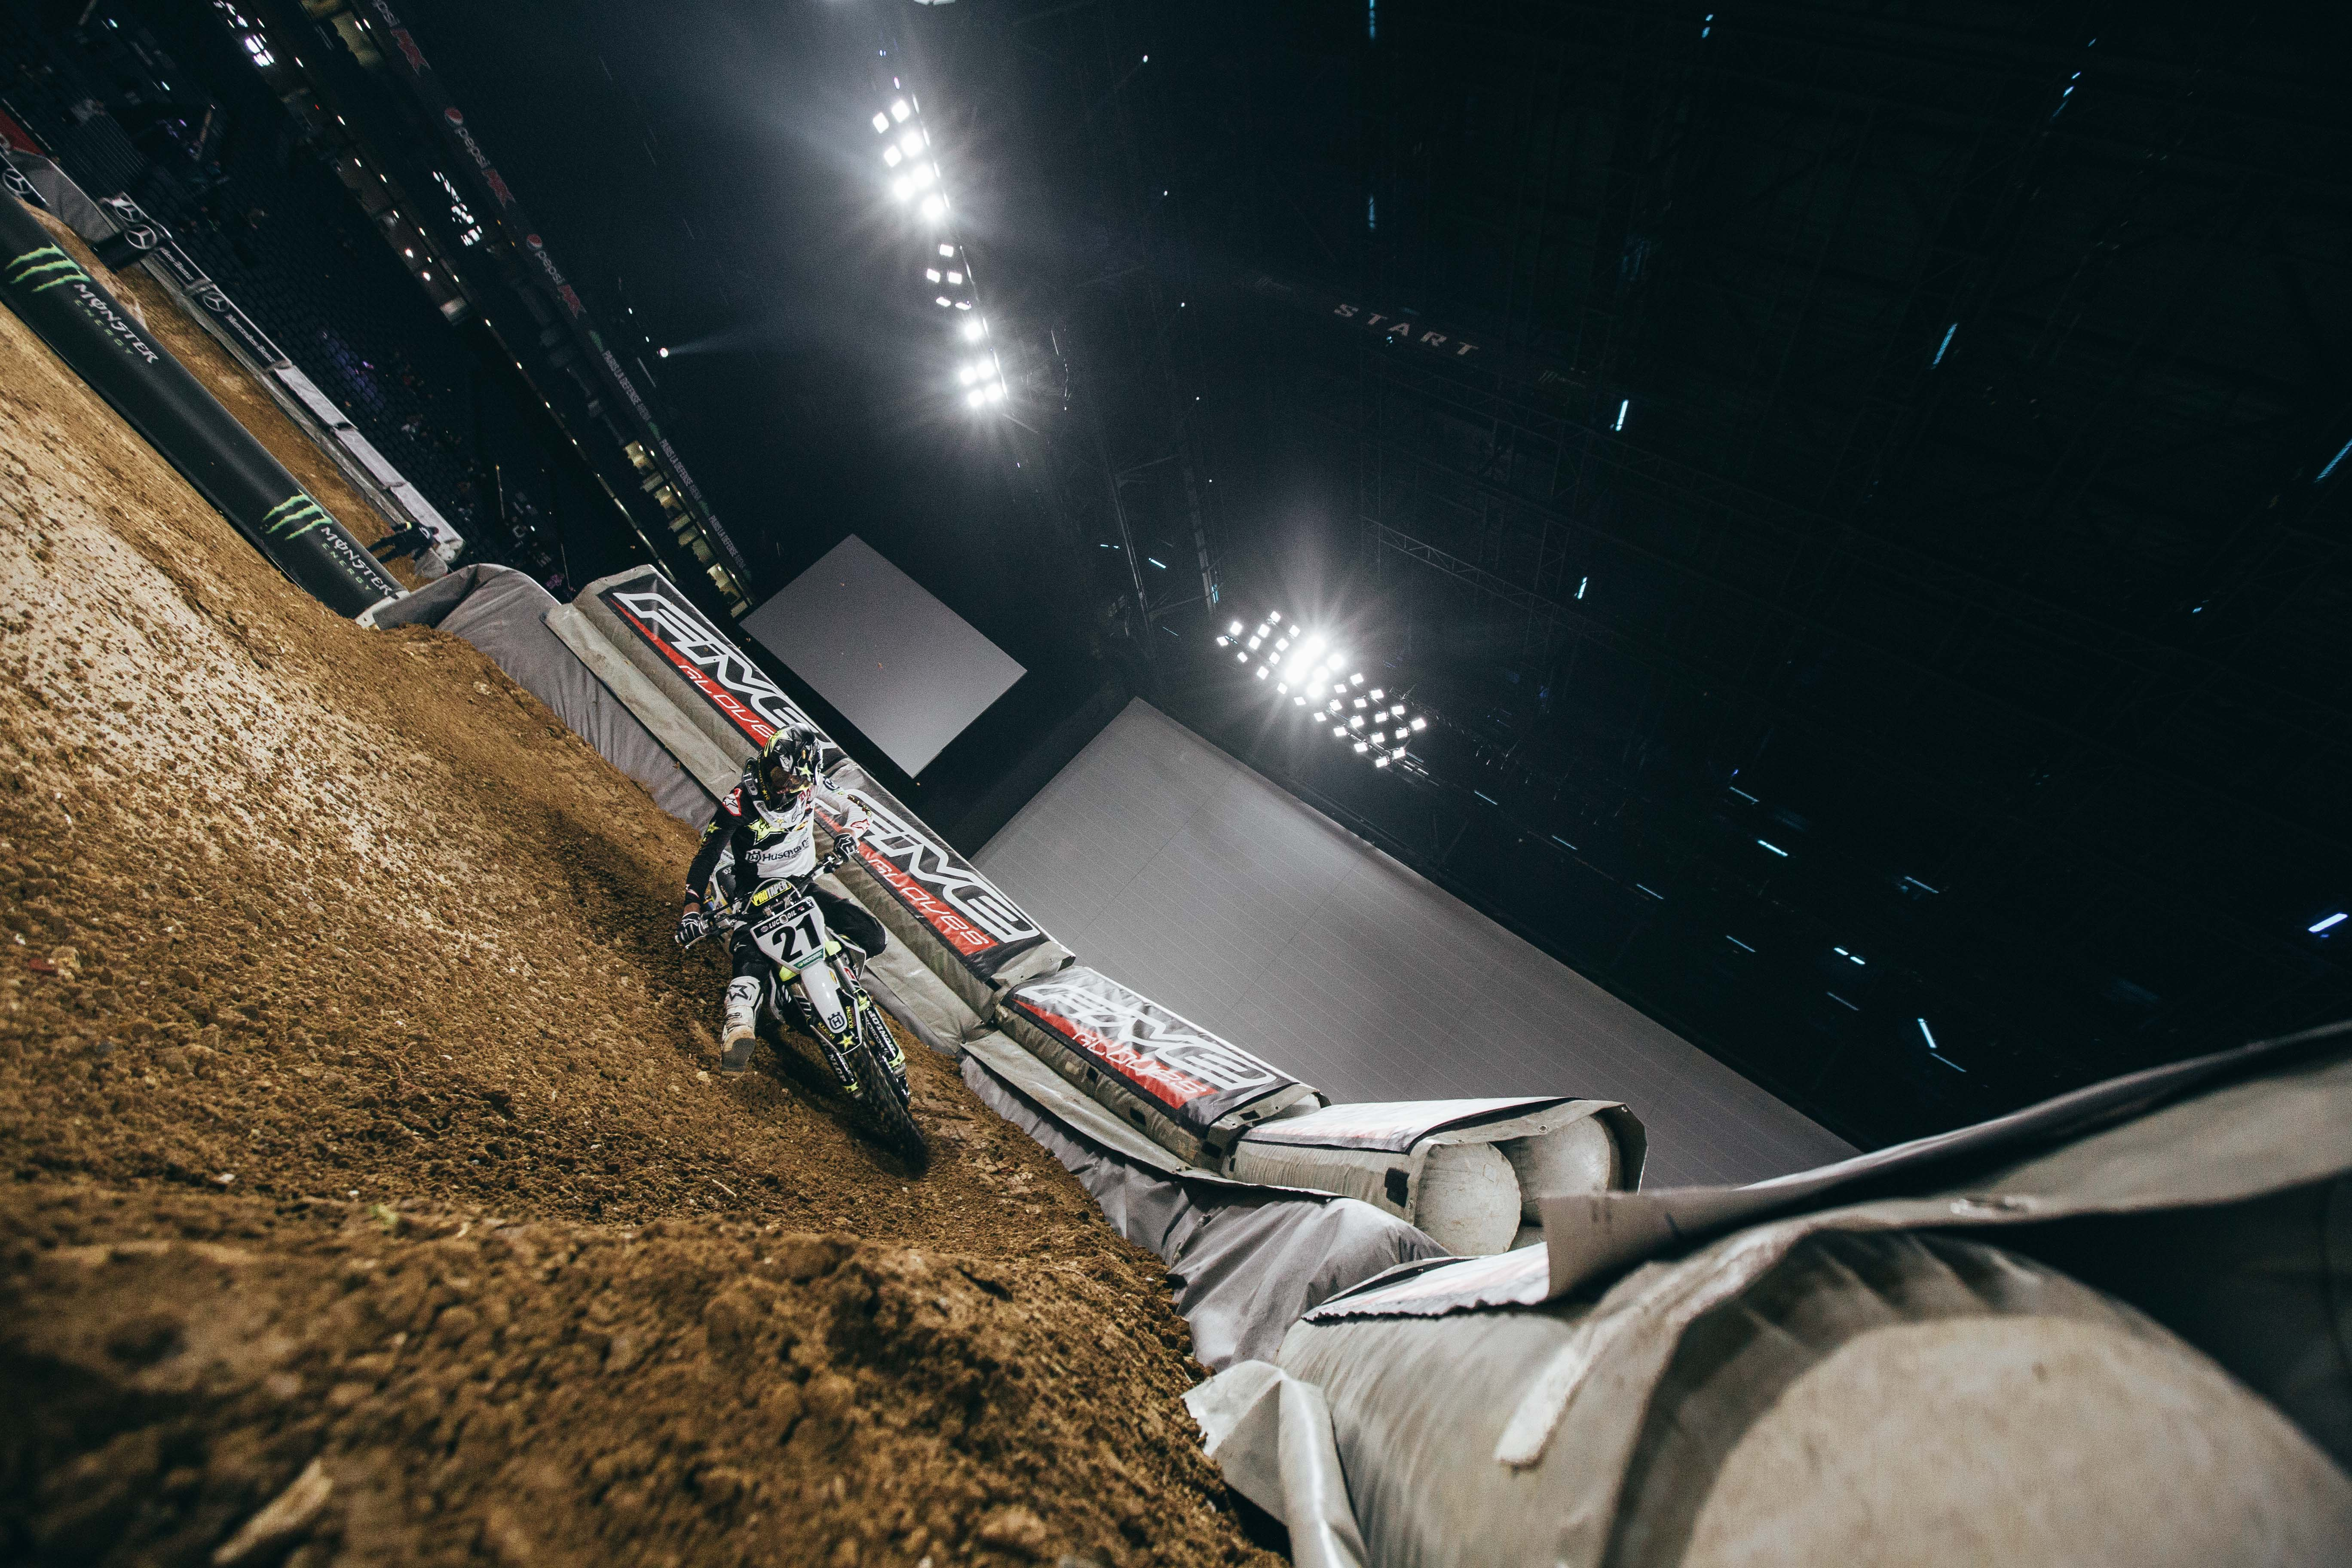 Five Gloves x Supercross Paris